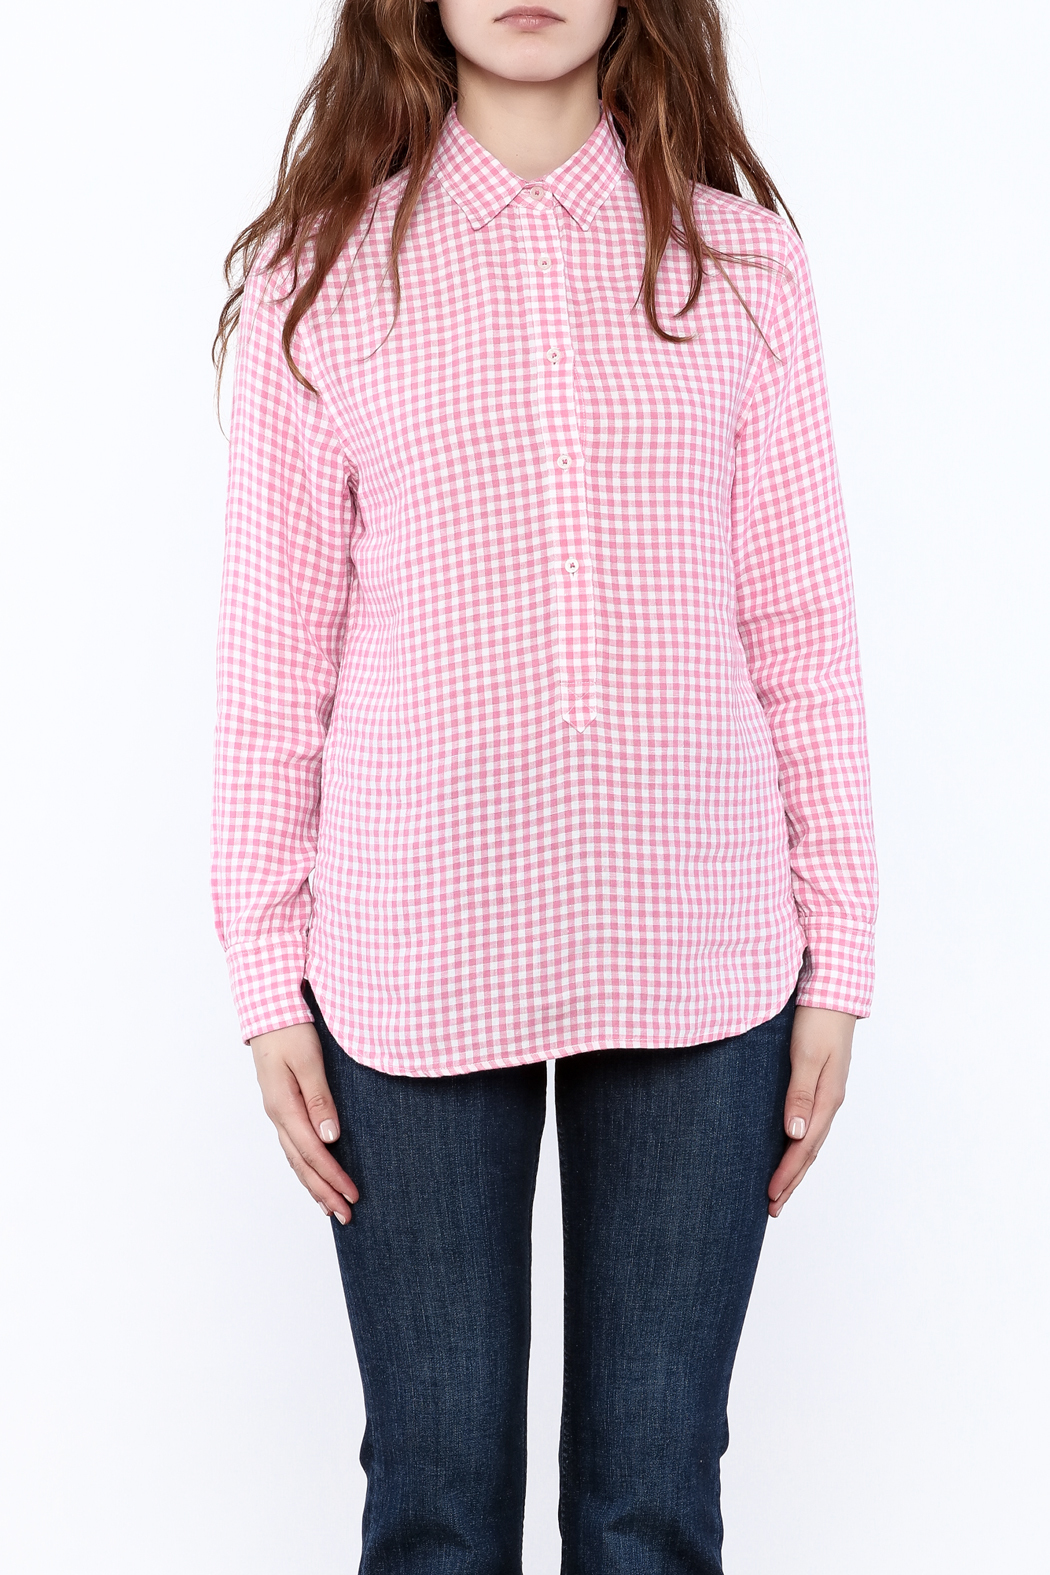 Southern Tide Gingham Button-Down Top - Side Cropped Image